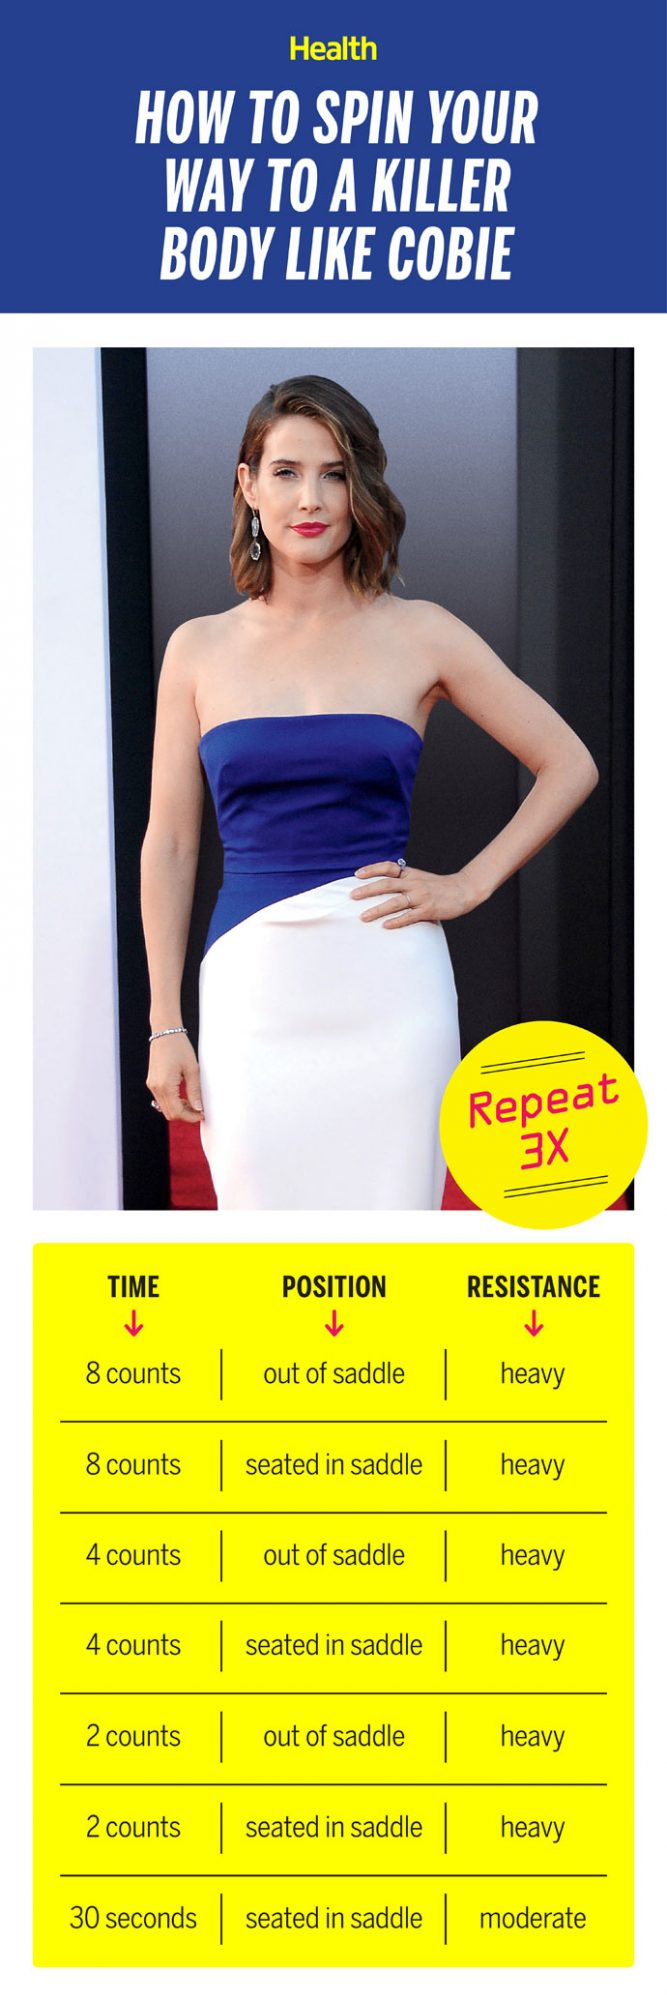 How to Spin Your Way to a Killer Body Like Cobie Smulders